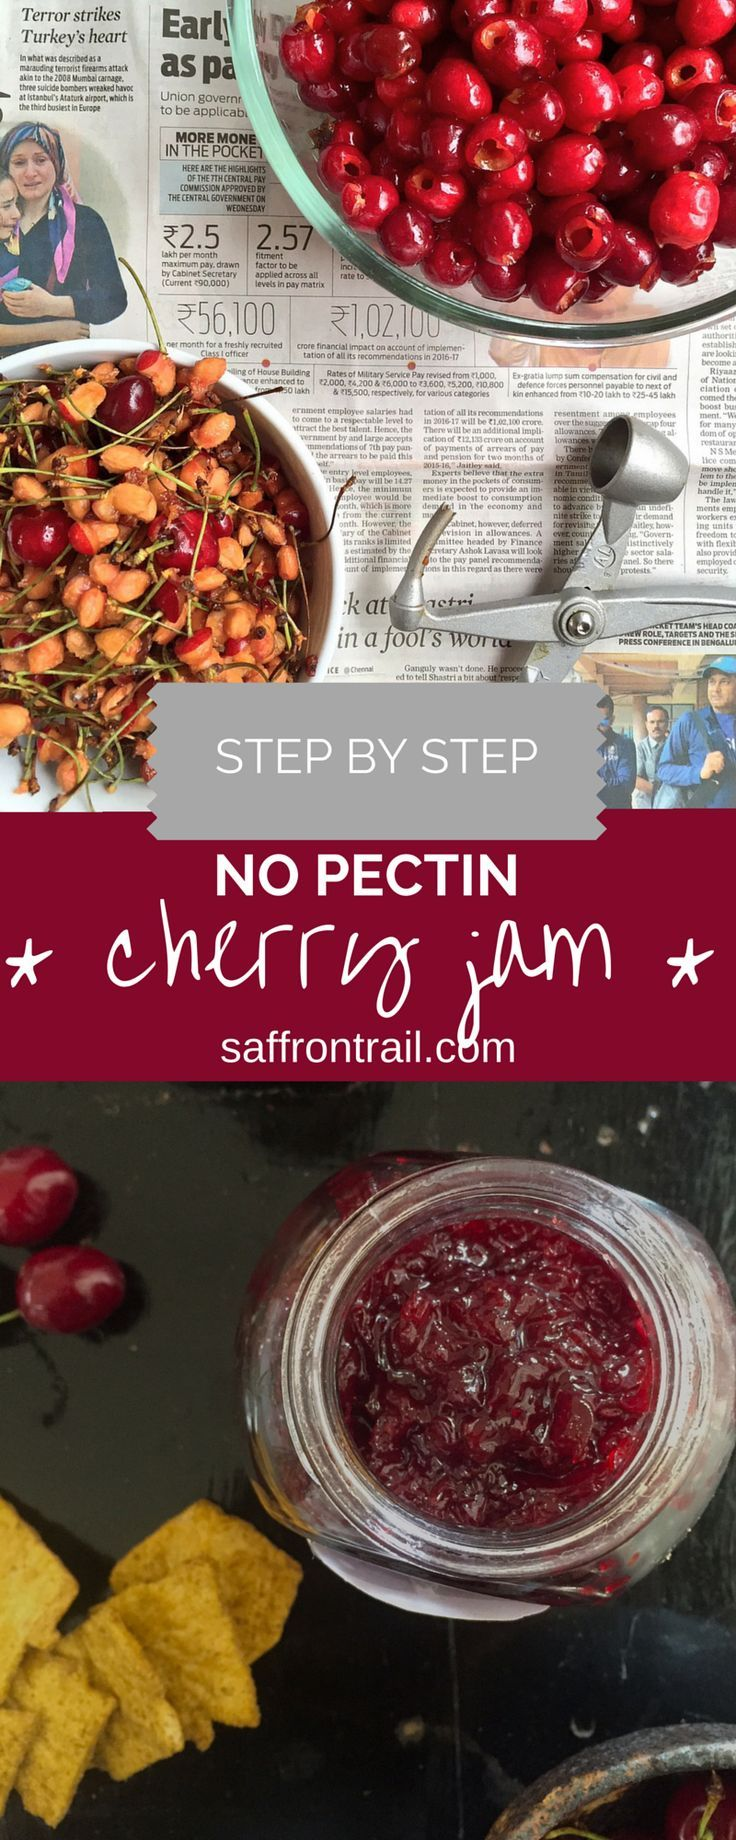 A easy recipe for no-pectin cherry jam that you can make to preserve the seasonal fresh cherries in a bottle and relish them over a few weeks. Do give this a try when the cherries are in season.